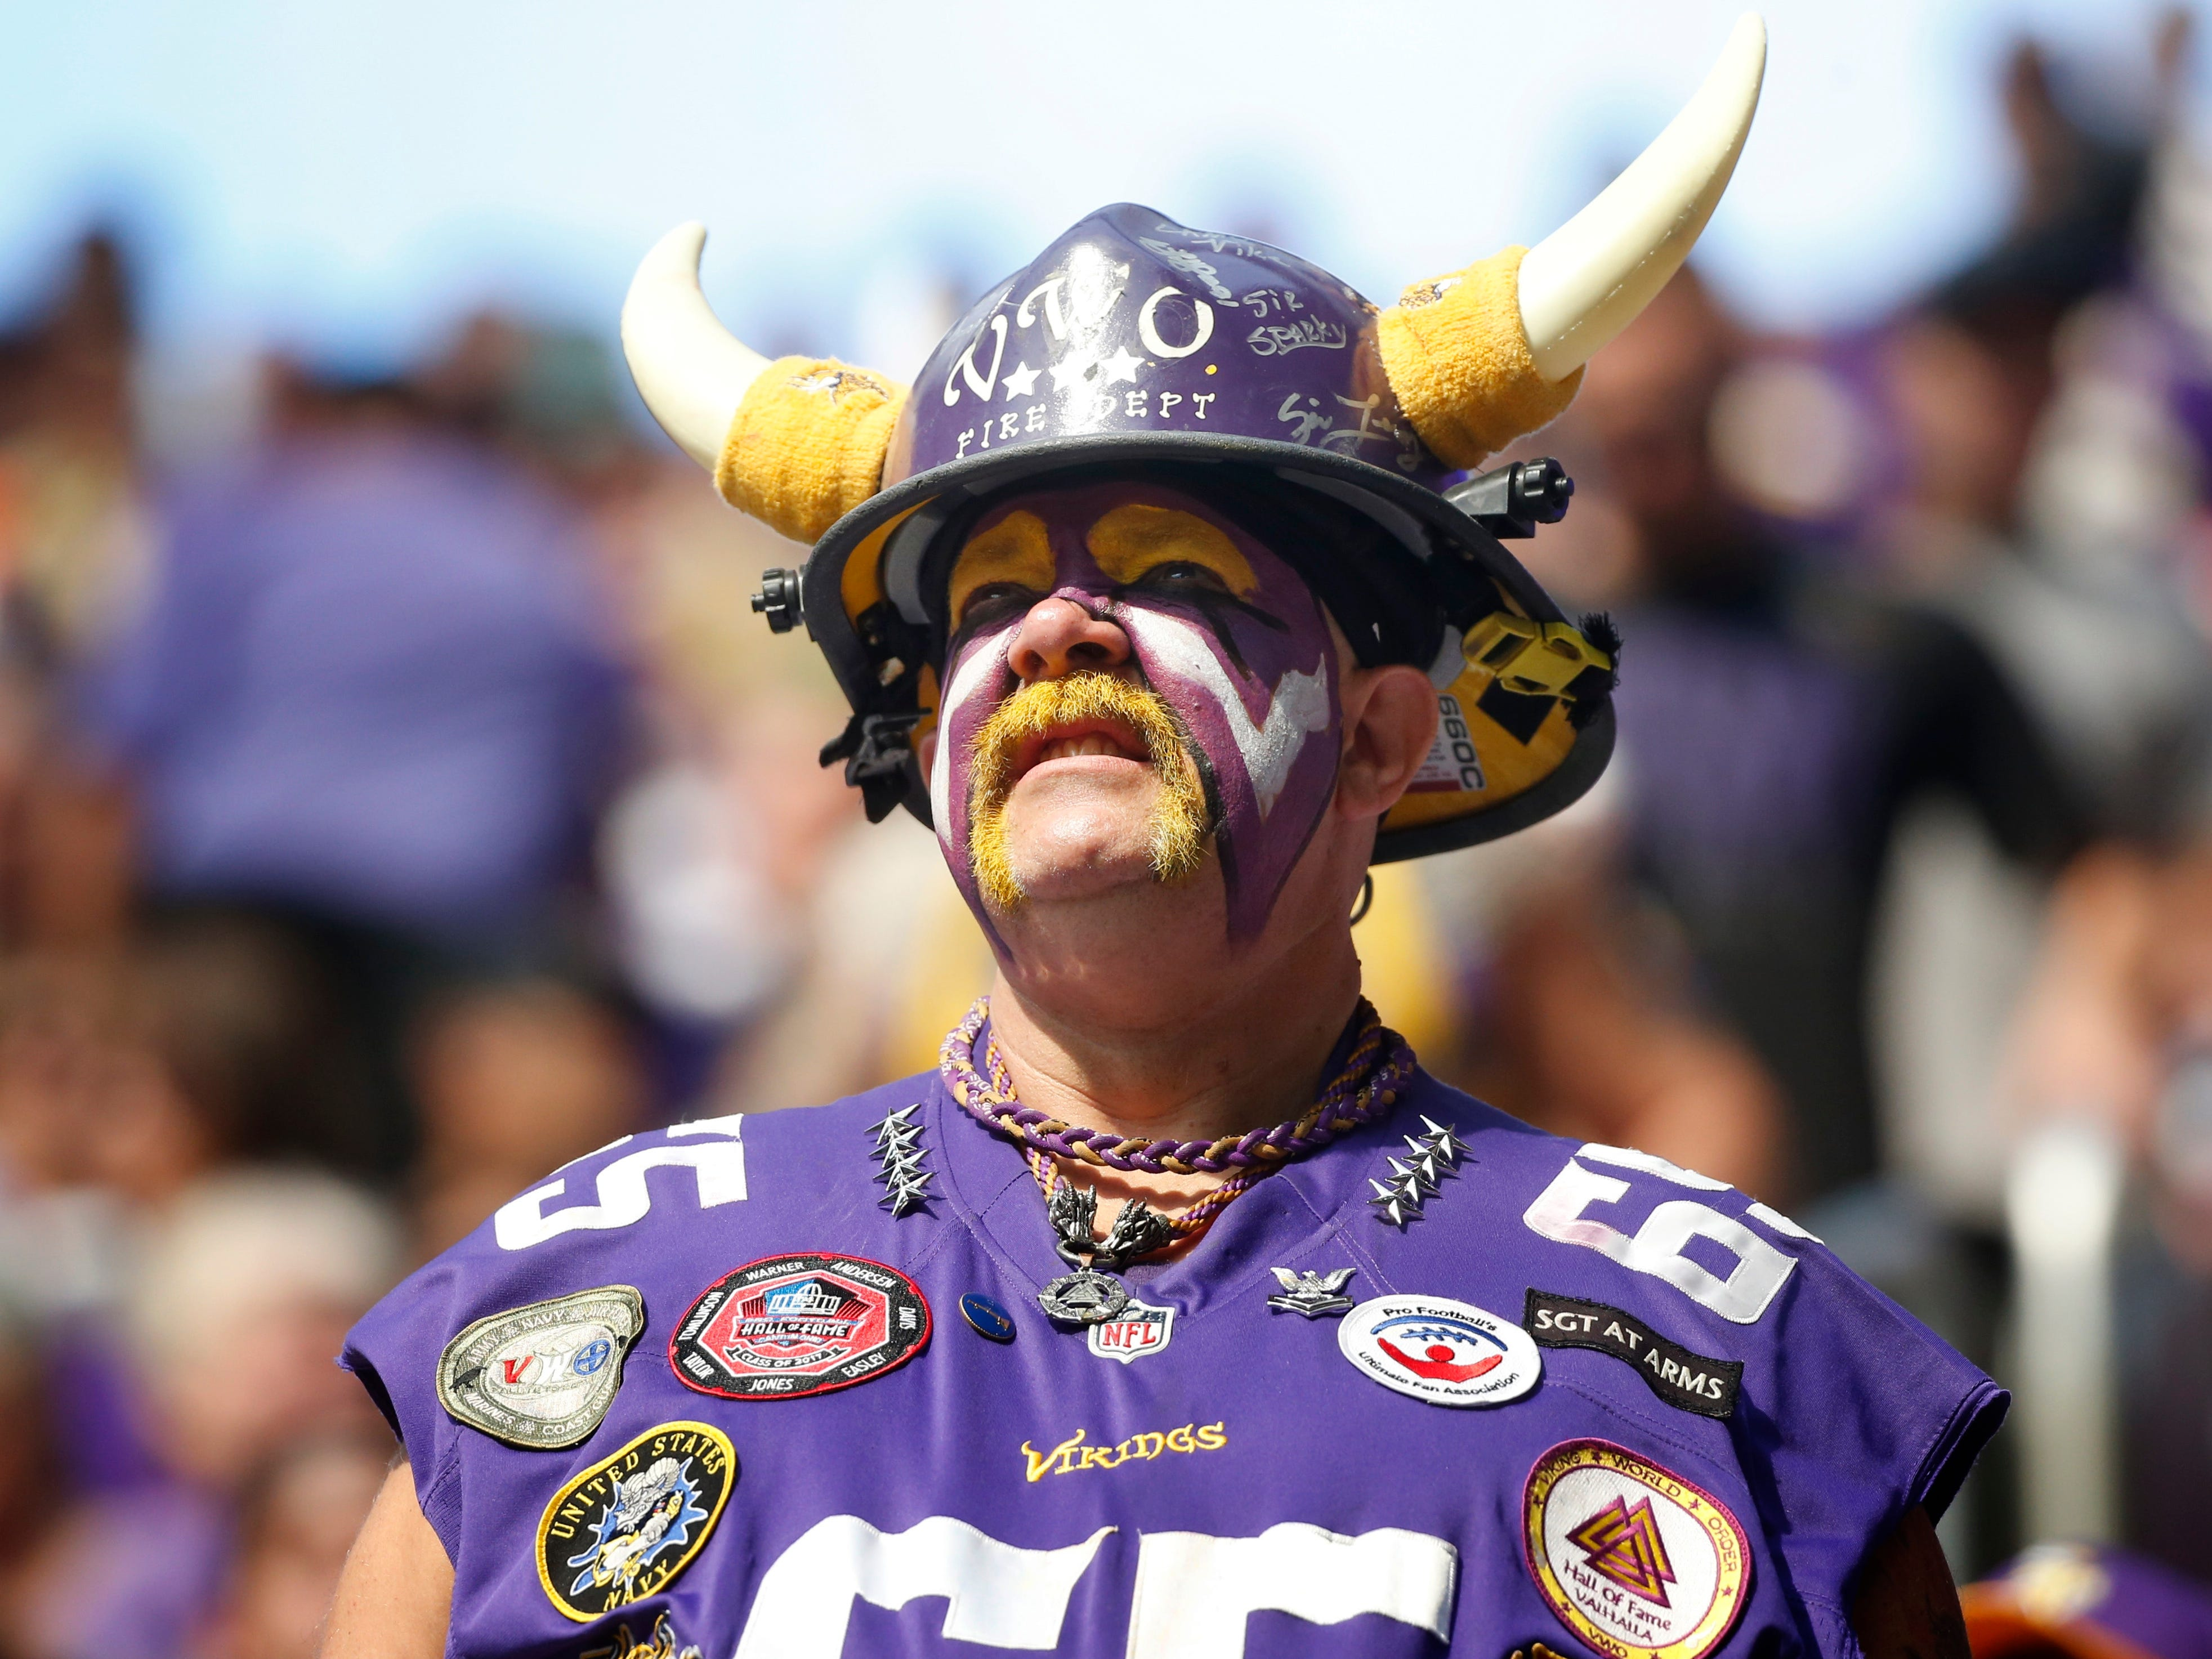 A Minnesota Vikings fan watches from the stands during the first half against the San Francisco 49ers.